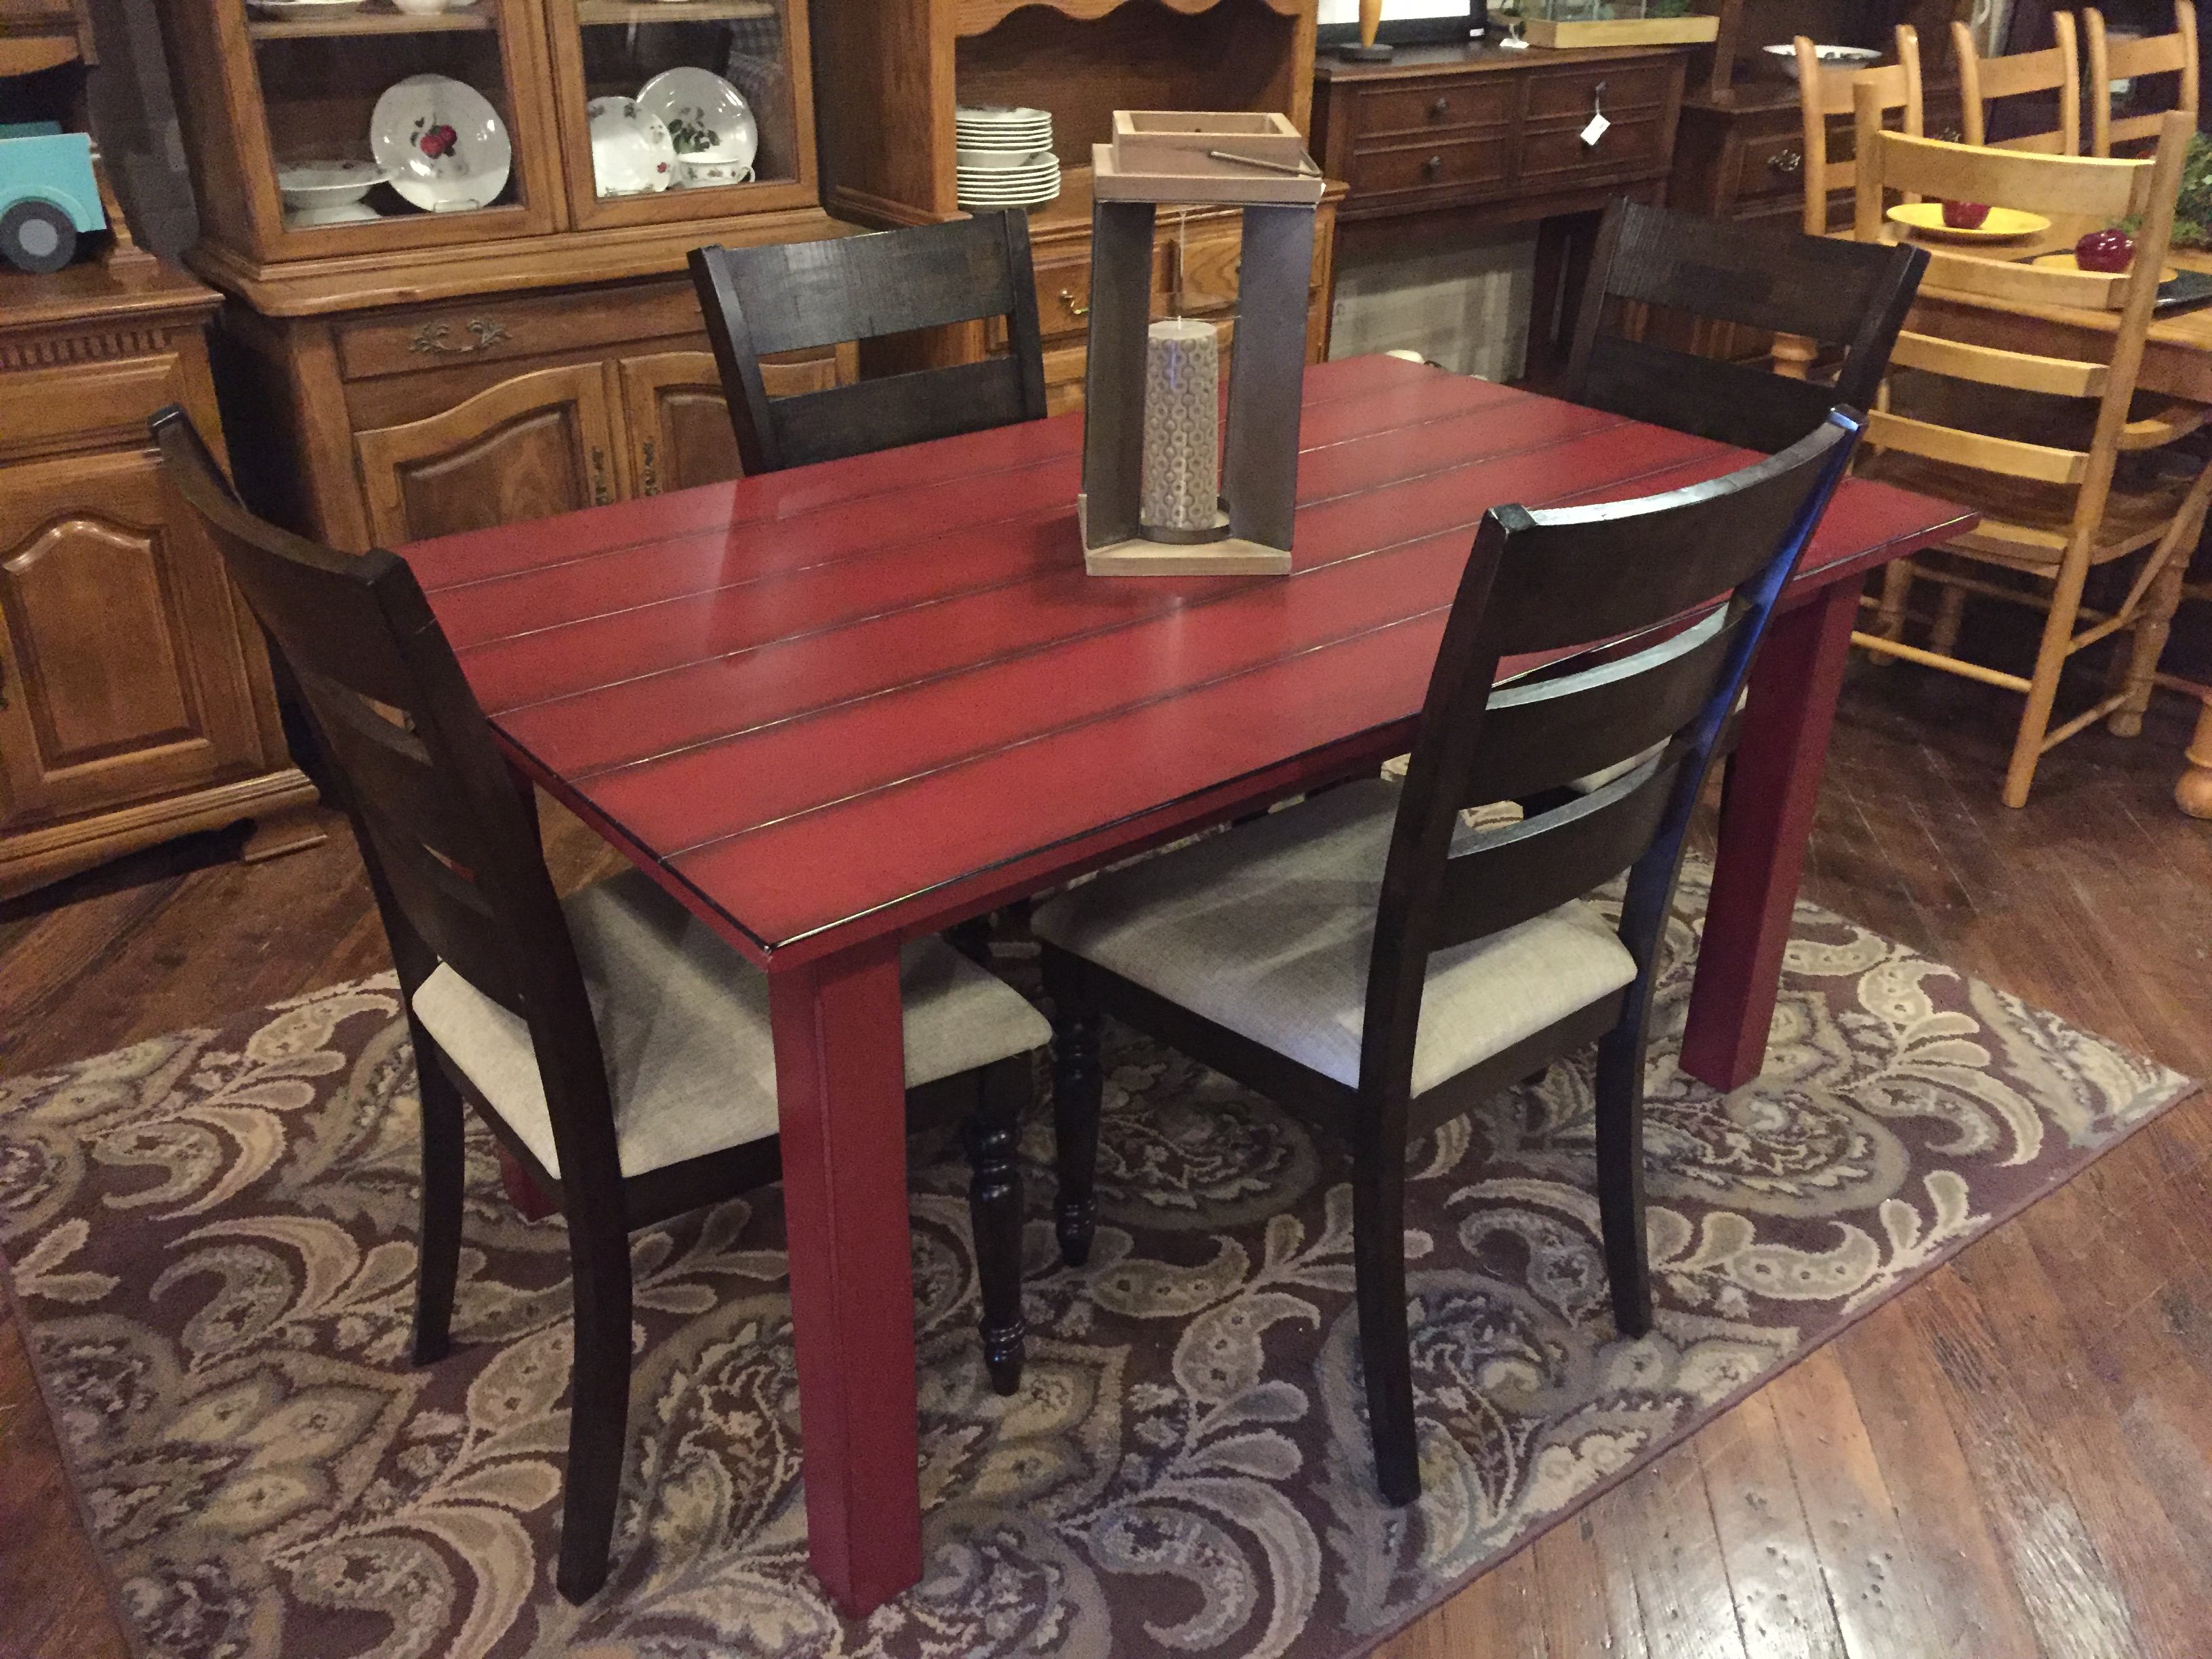 RED FARM TABLE & 4 ESPRESSO CHAIRS